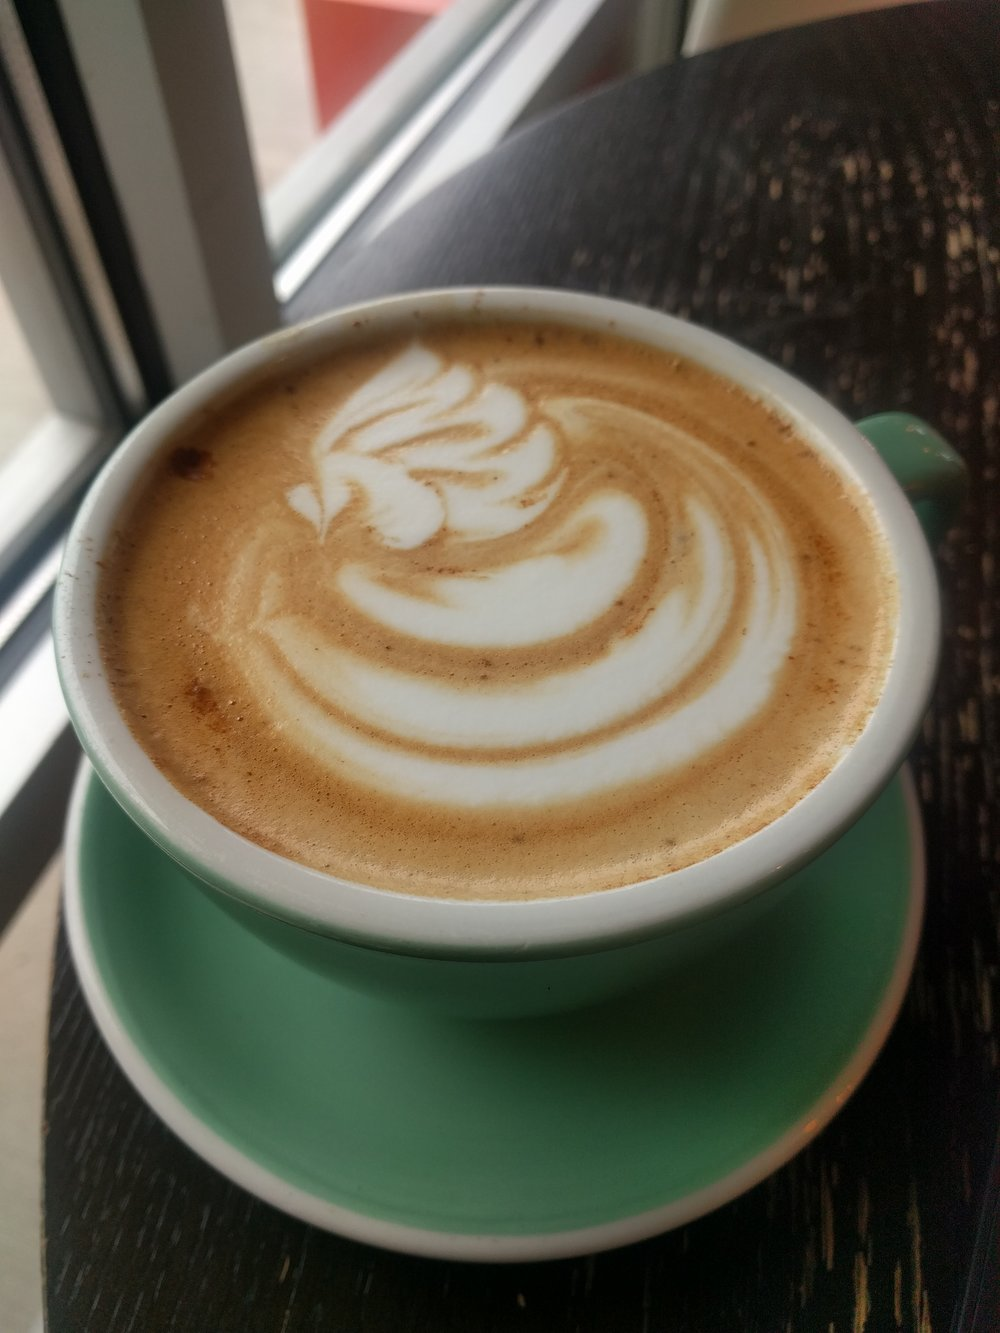 You can enjoy a cafe miel, or honey latte, at almost any independent coffee shop in Grand Rapids.